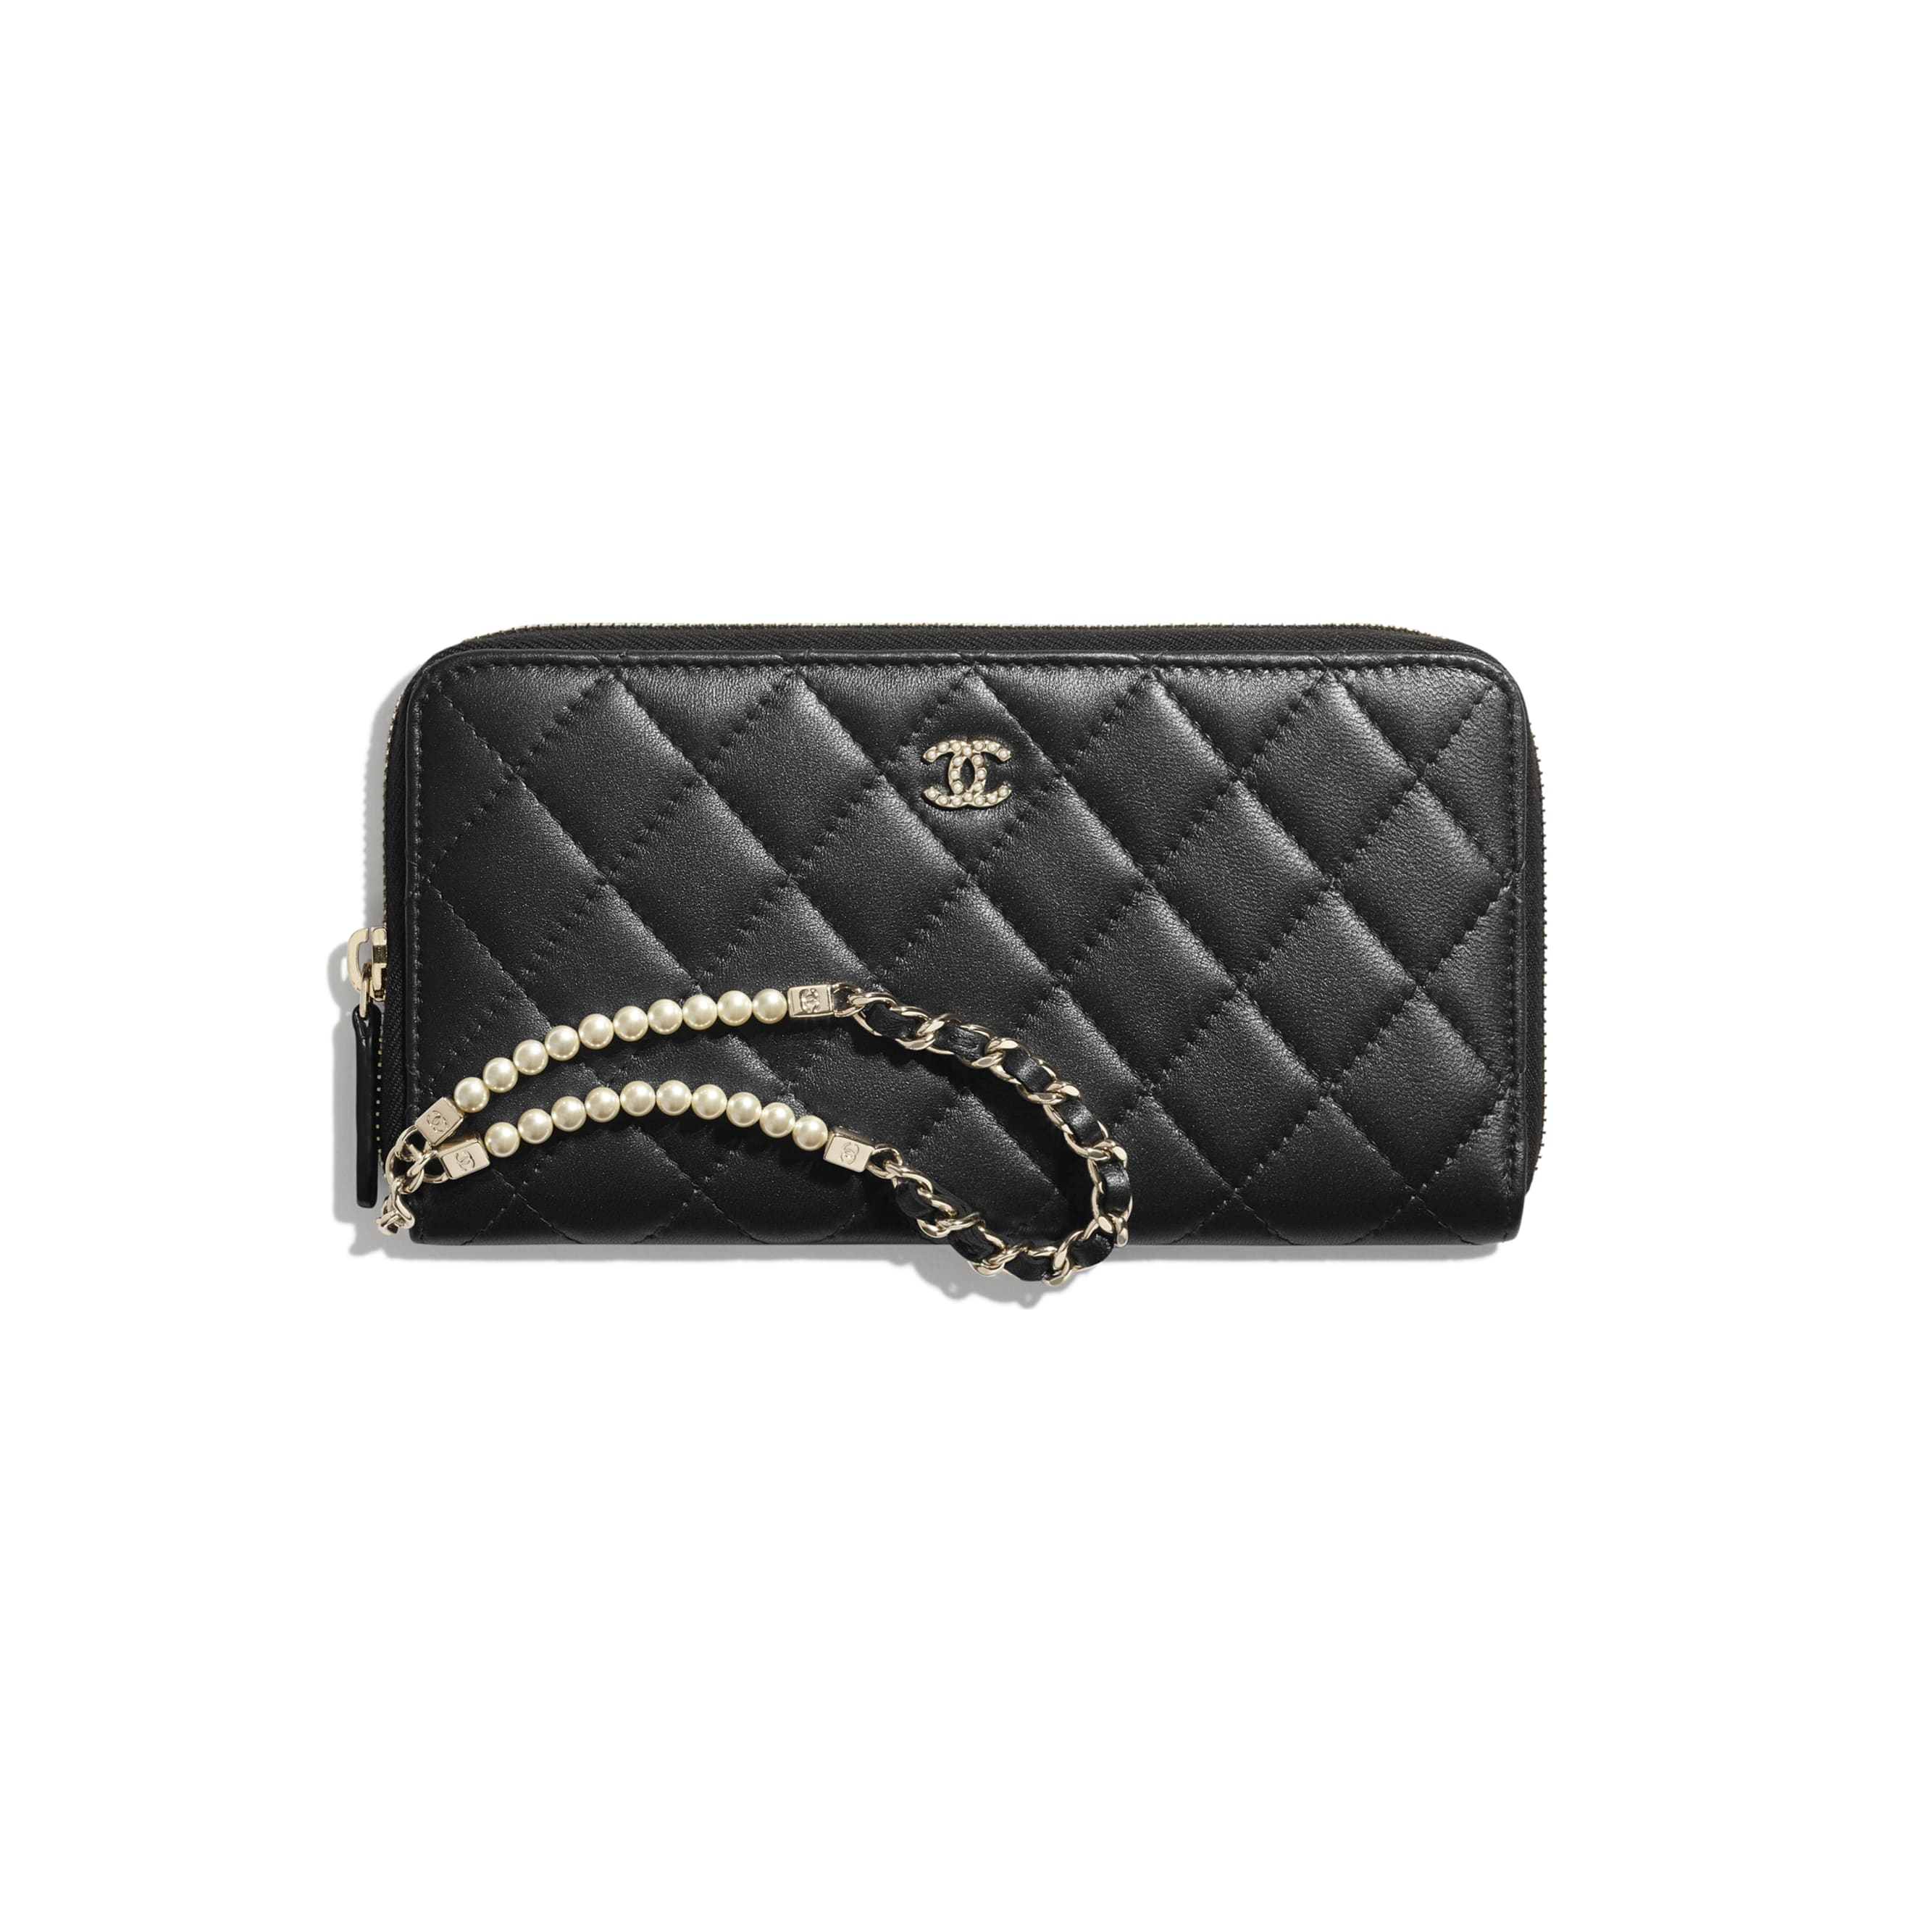 Zipped Wallet With Handle - Black - Iridescent lambskin & gold-tone metal - CHANEL - Default view - see standard sized version